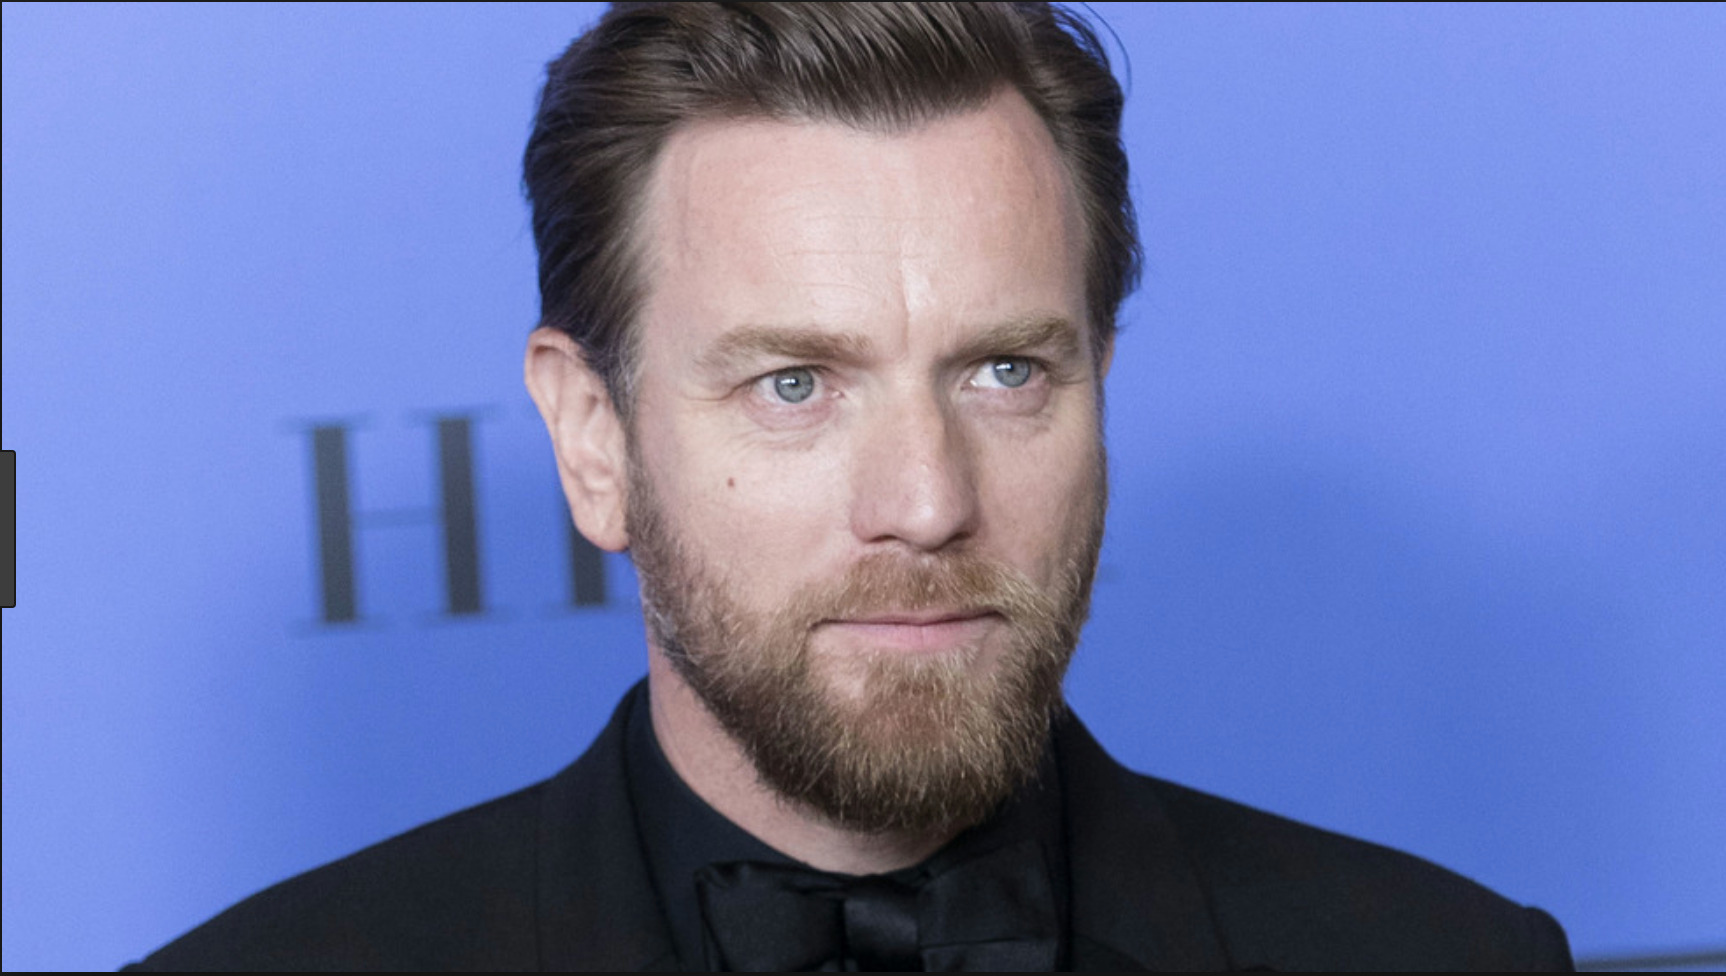 Birds of Prey casts Ewan McGregor